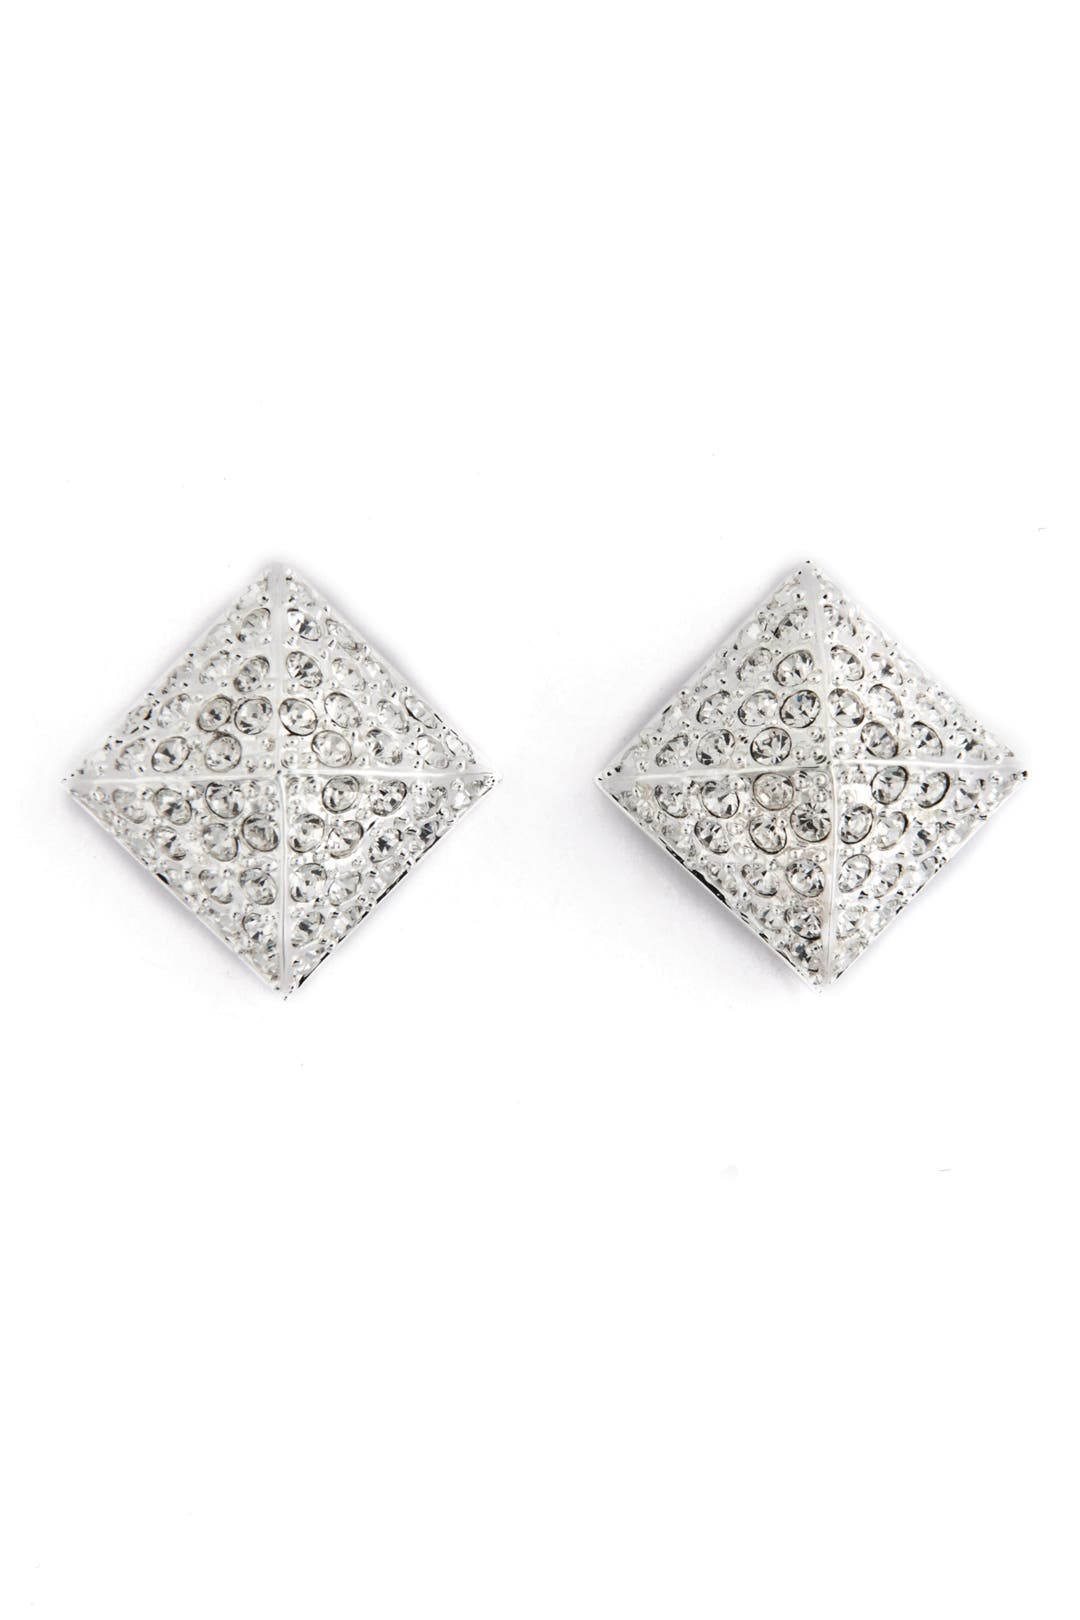 Pave Stud Earrings by CC Skye